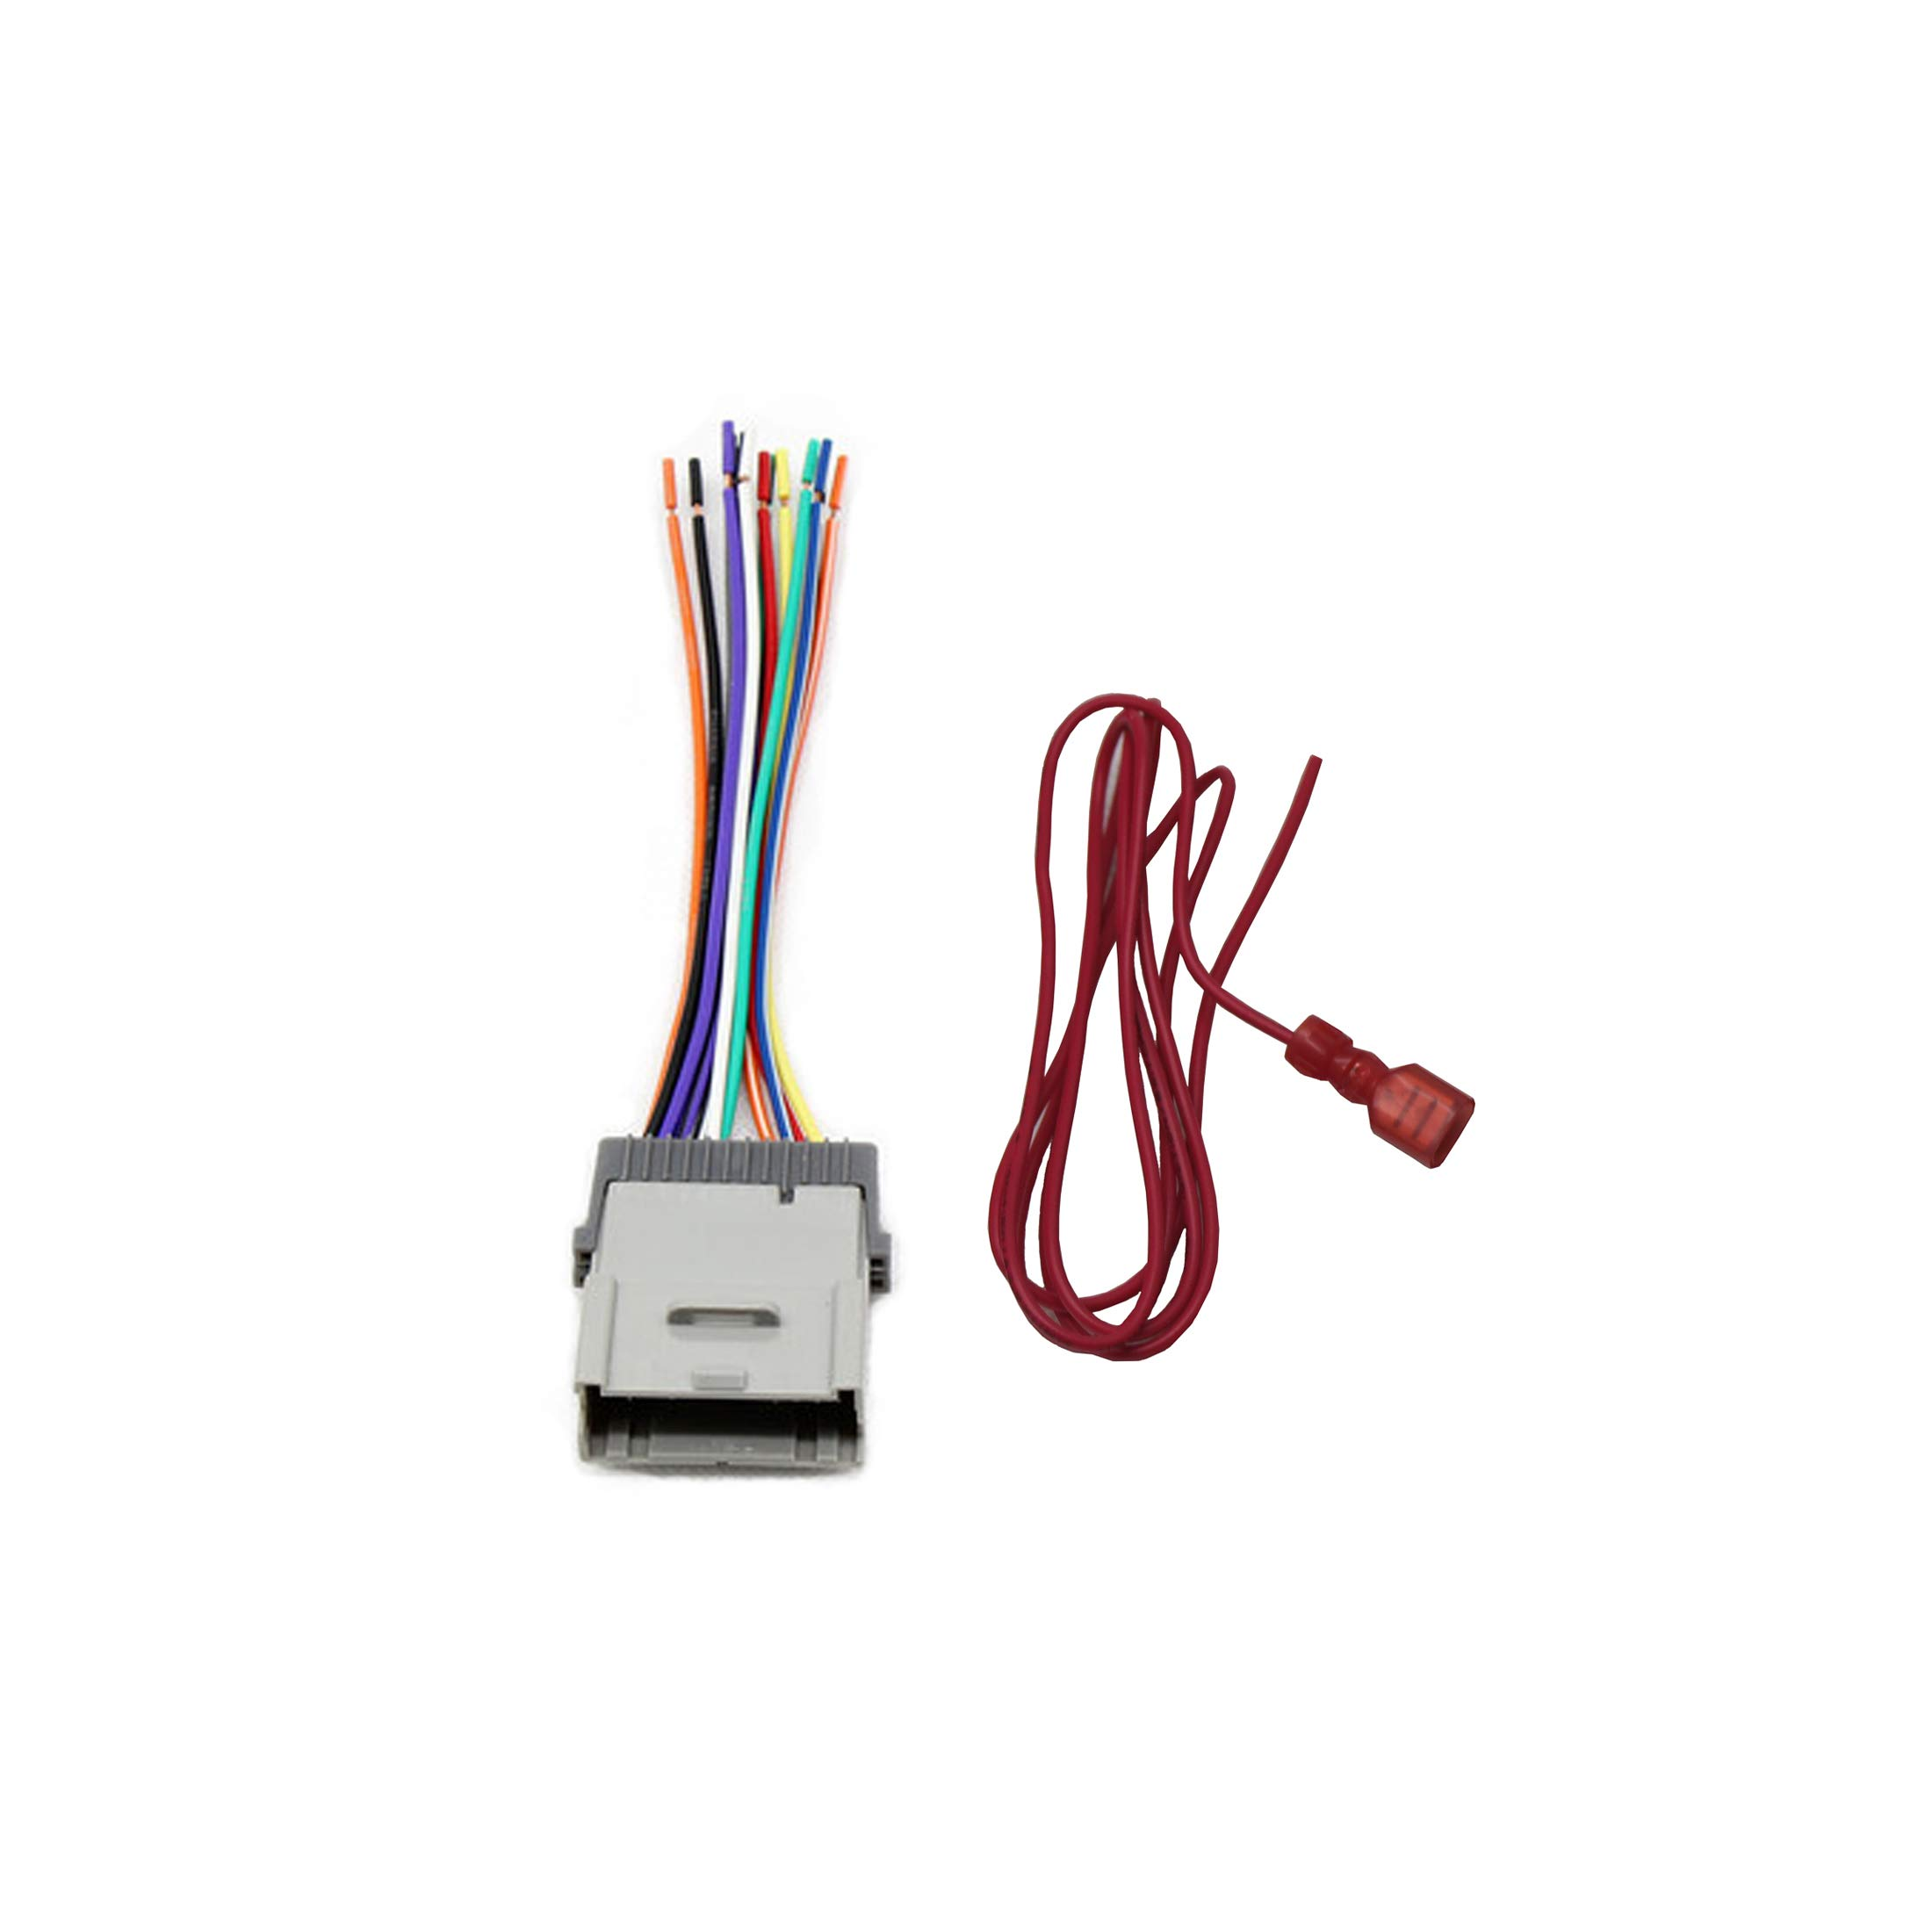 Gmc Stereo Wiring Harness from images-na.ssl-images-amazon.com